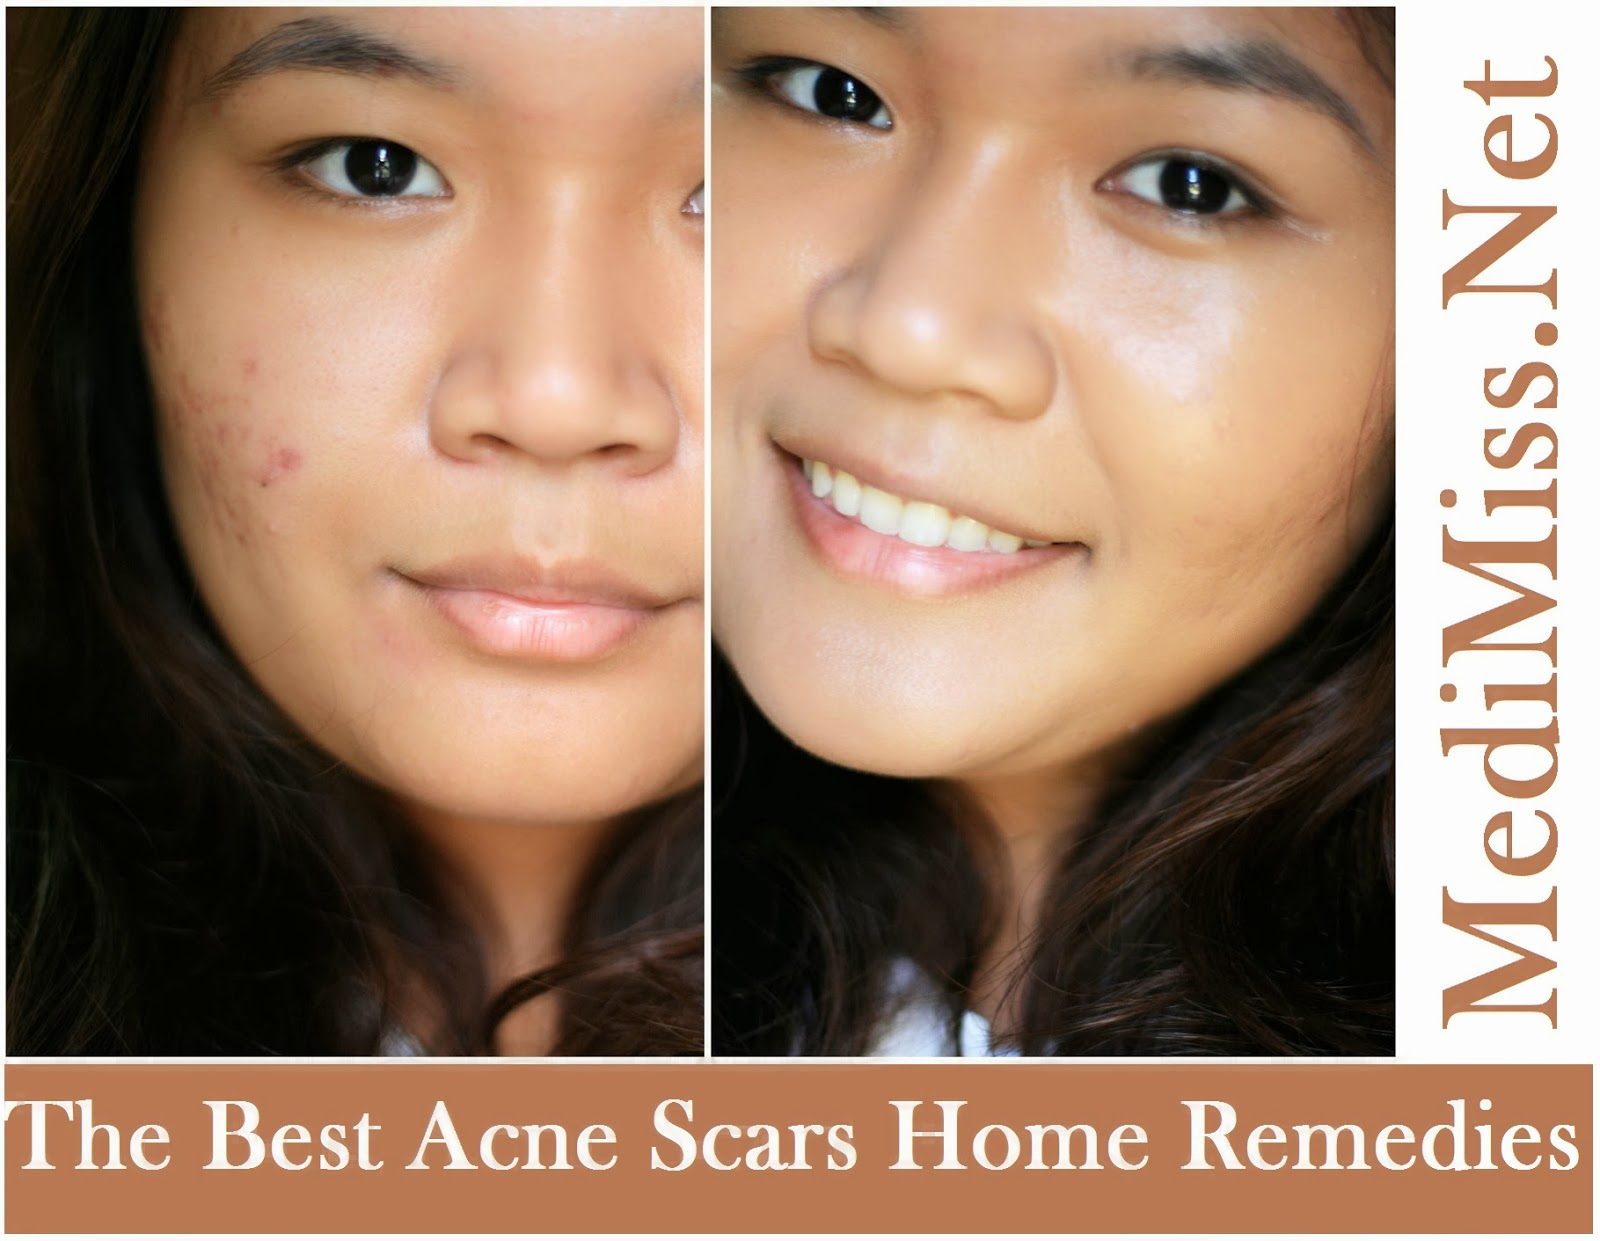 the best acne scars home remedies medimiss